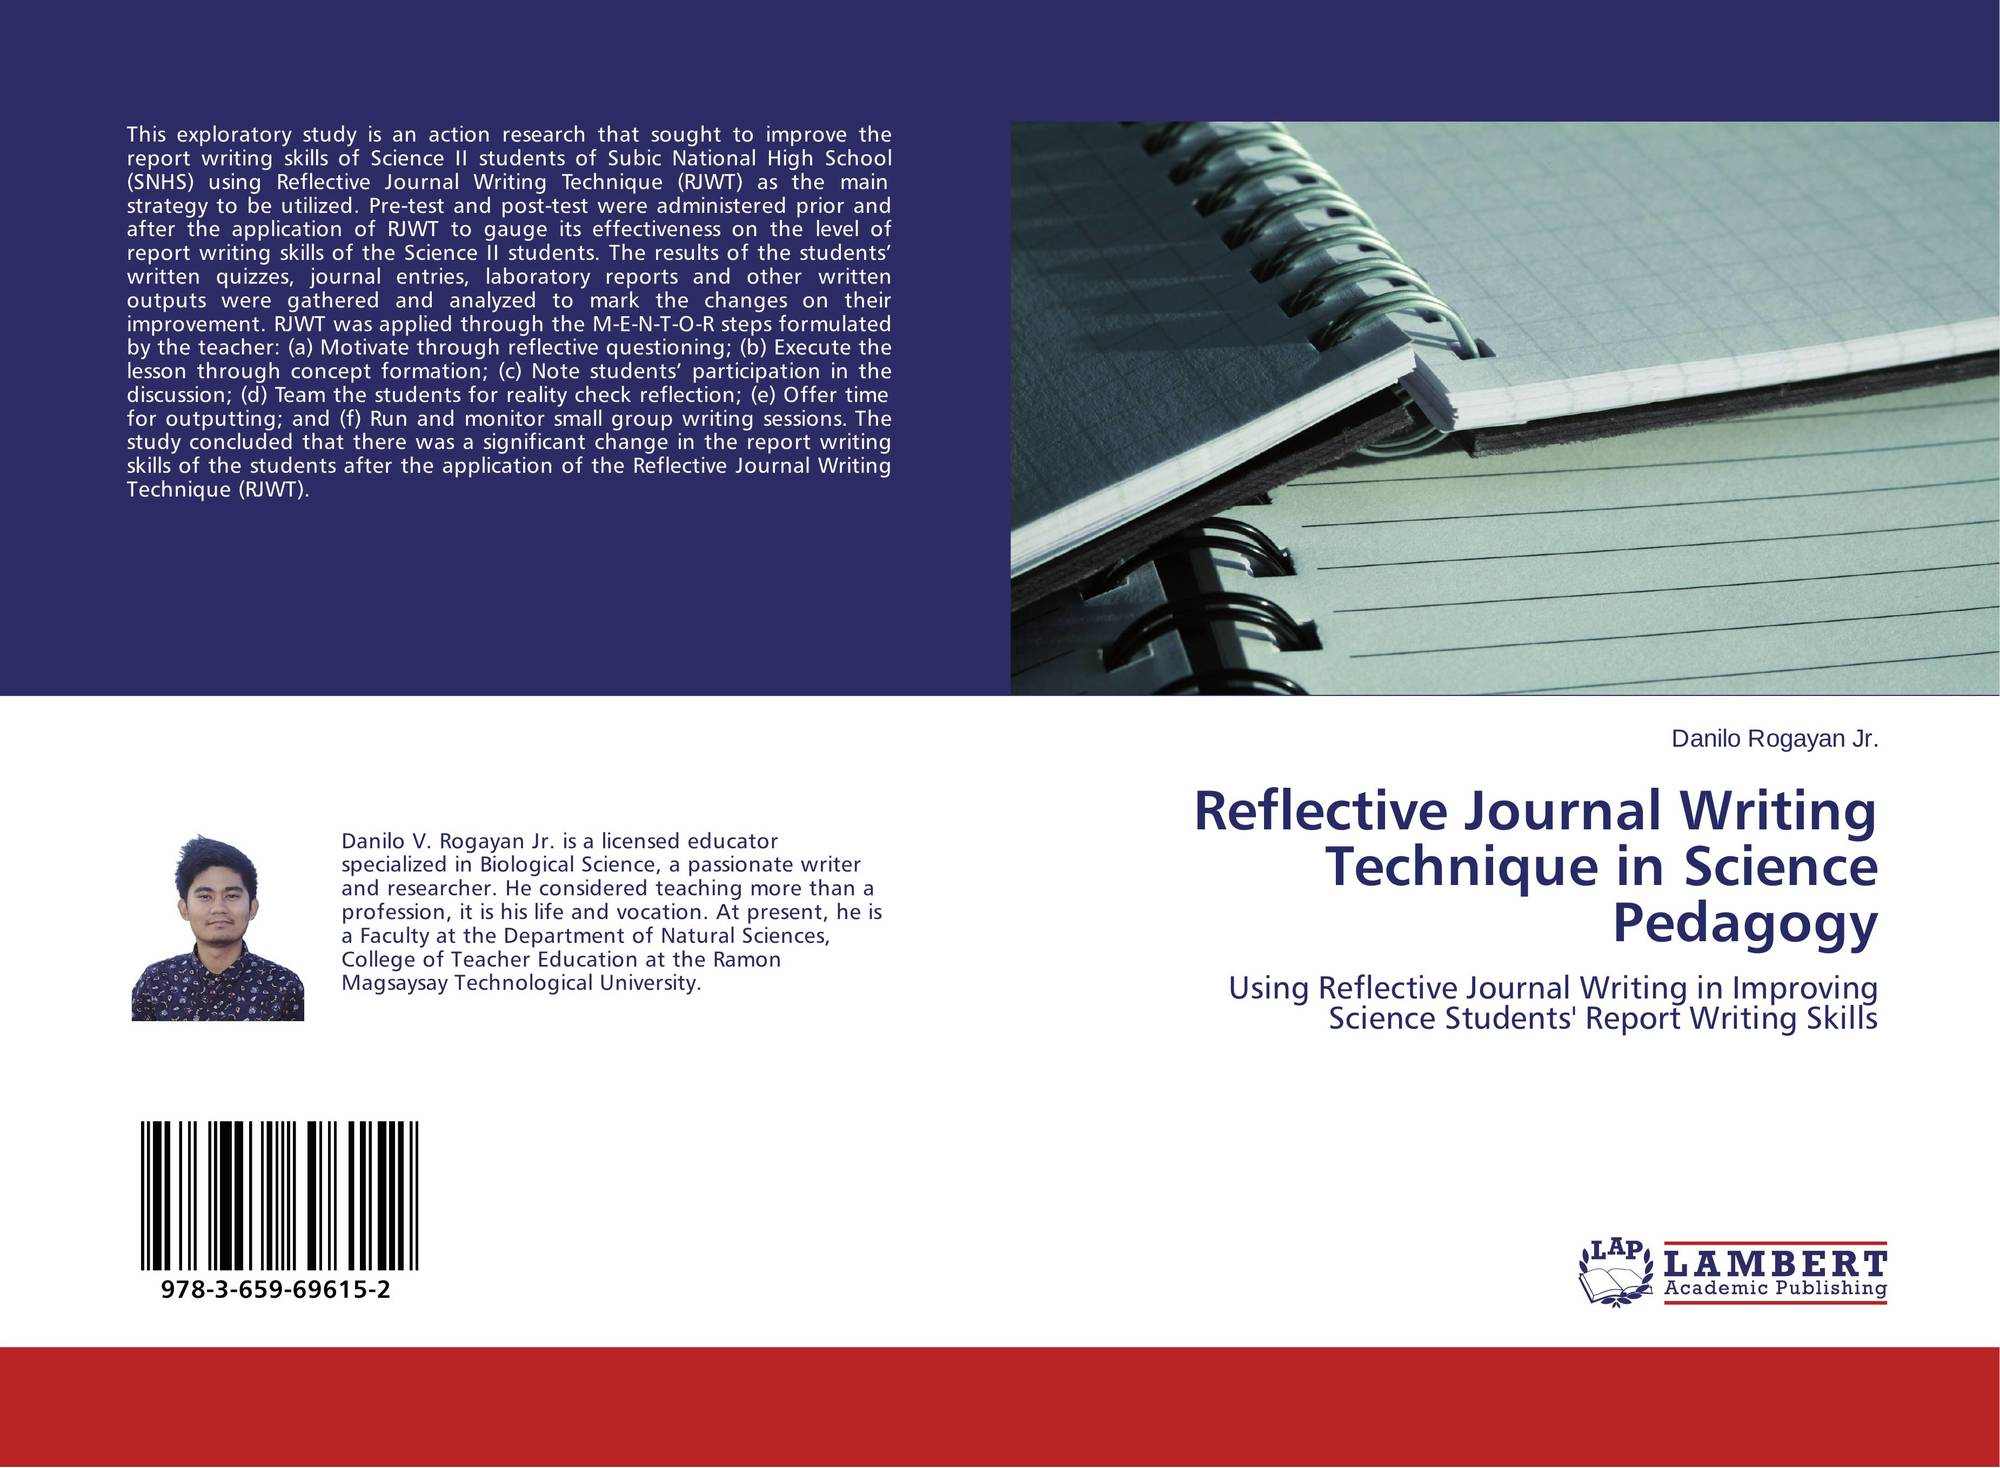 english learning reflective journal reading Reflective practice is the ability to reflect on one's actions so as to  reflective learning organizations have invested in coaching  keep a journal:.